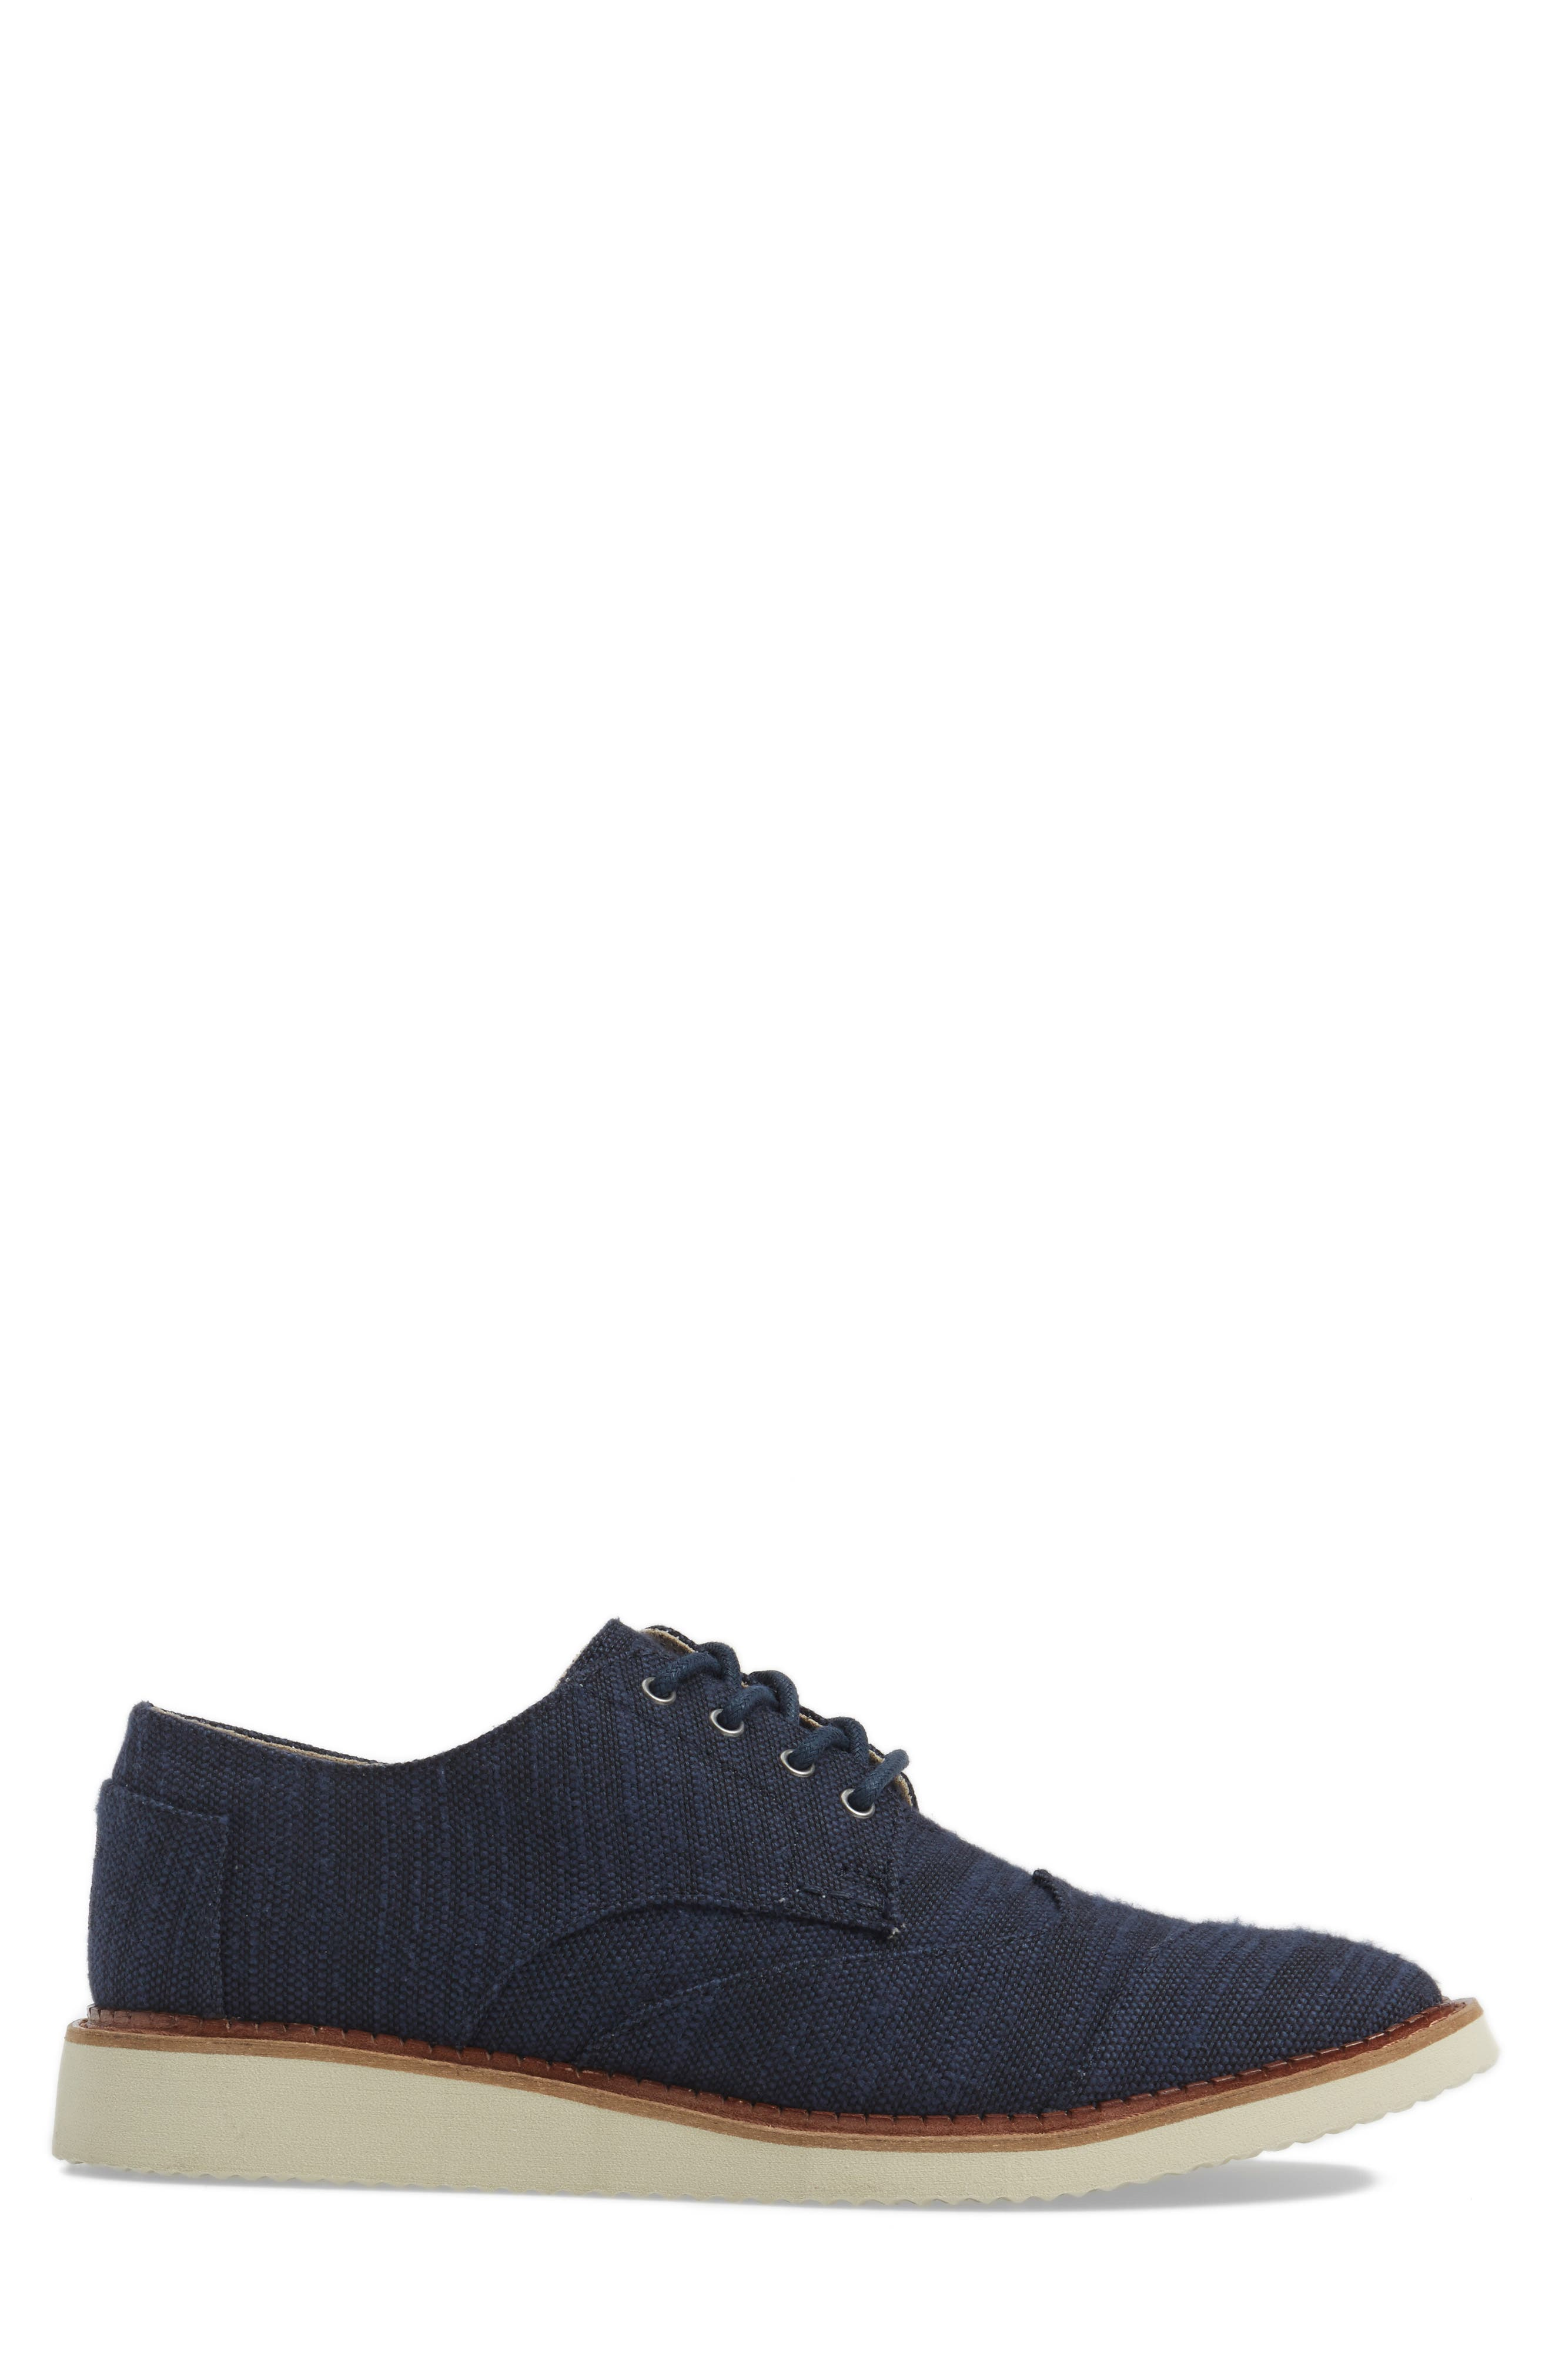 'Classic Brogue' Cotton Twill Derby,                             Alternate thumbnail 43, color,